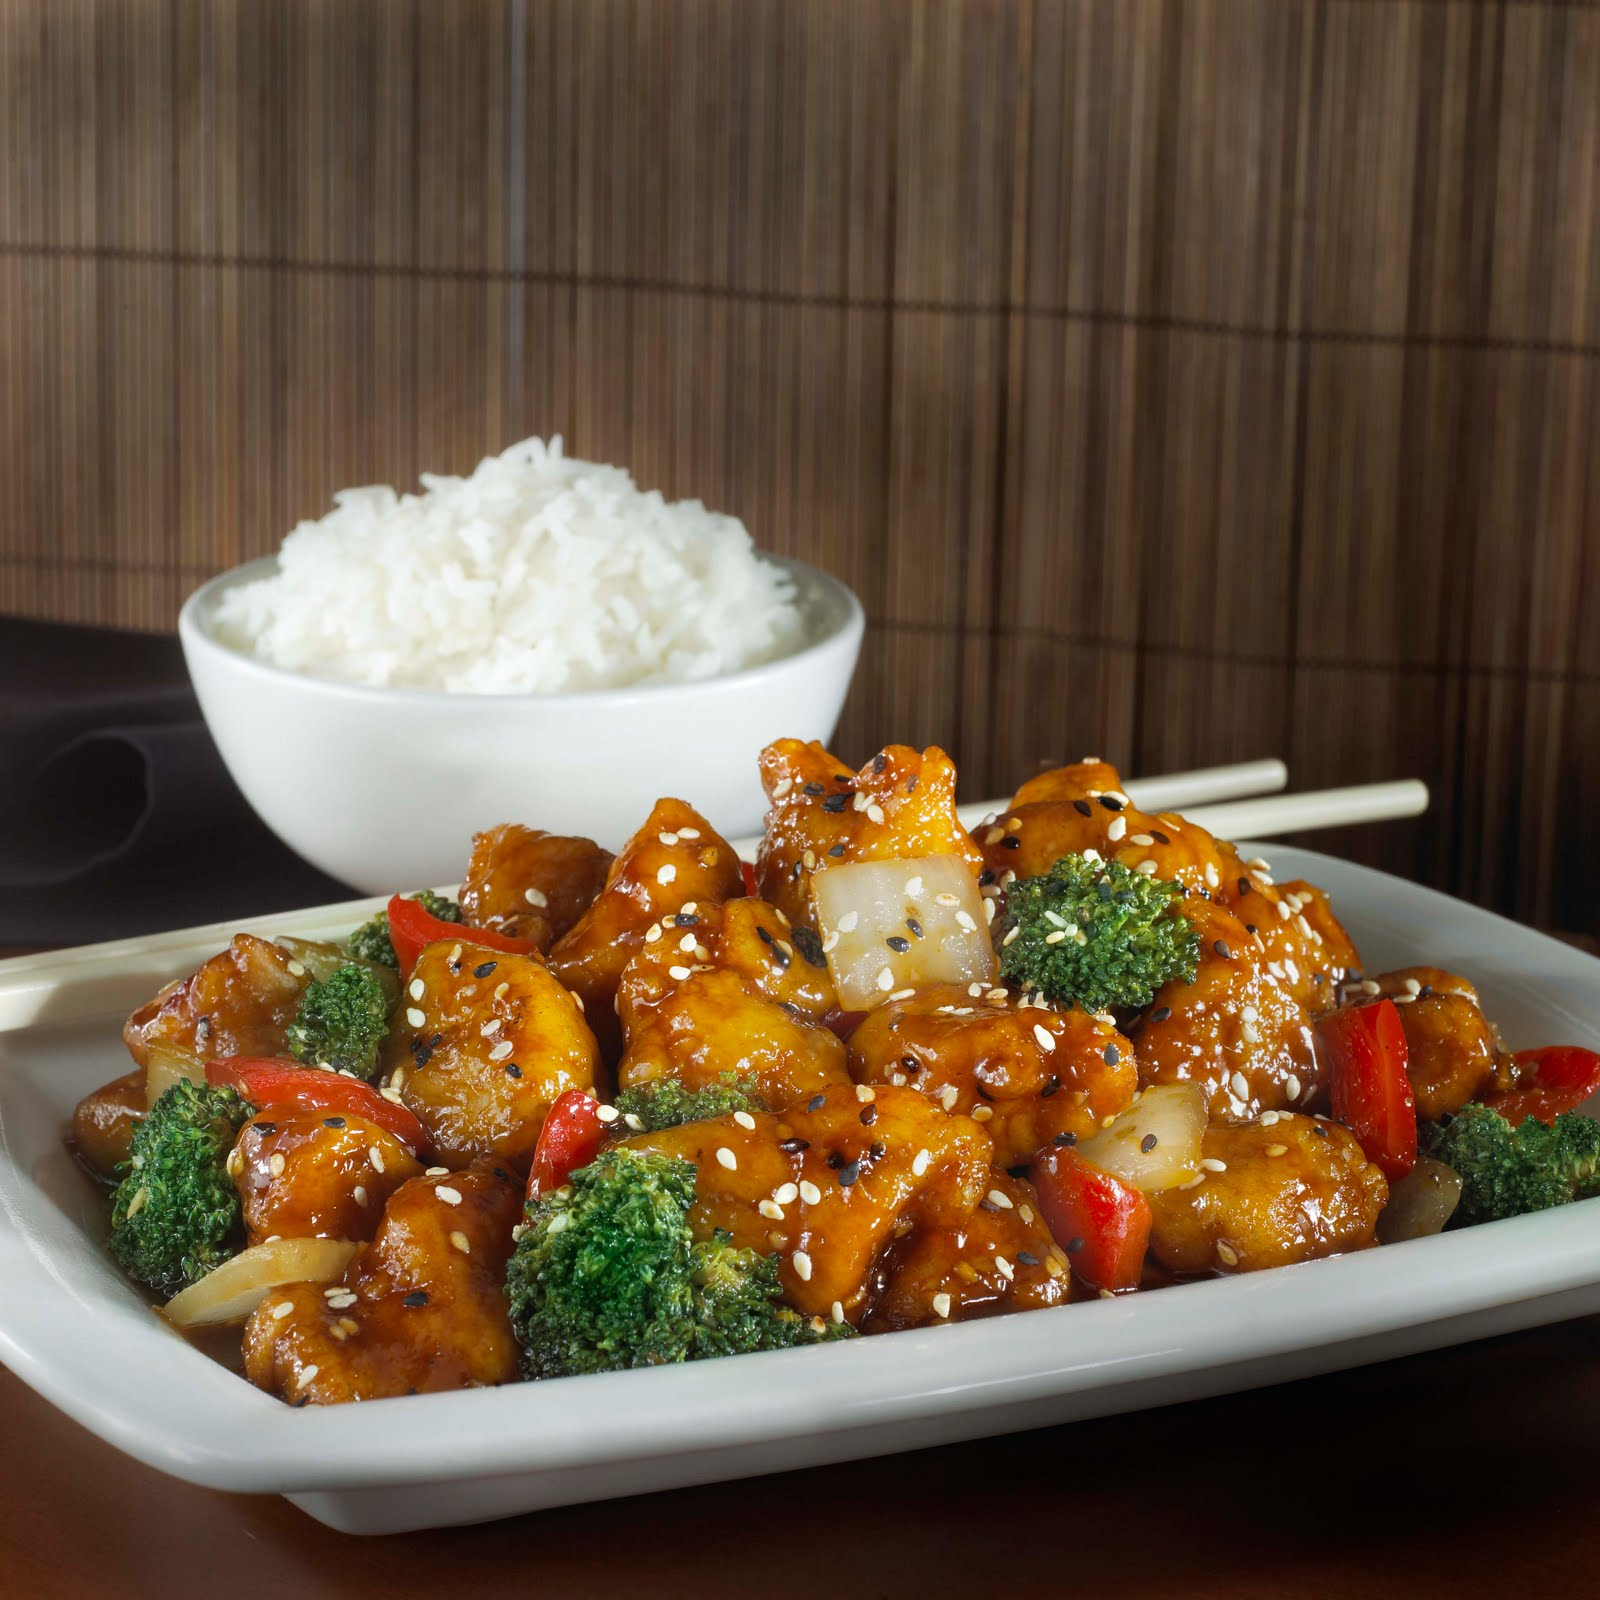 Chinese food images sesame chicken hd wallpaper and background chinese food images sesame chicken hd wallpaper and background photos forumfinder Images